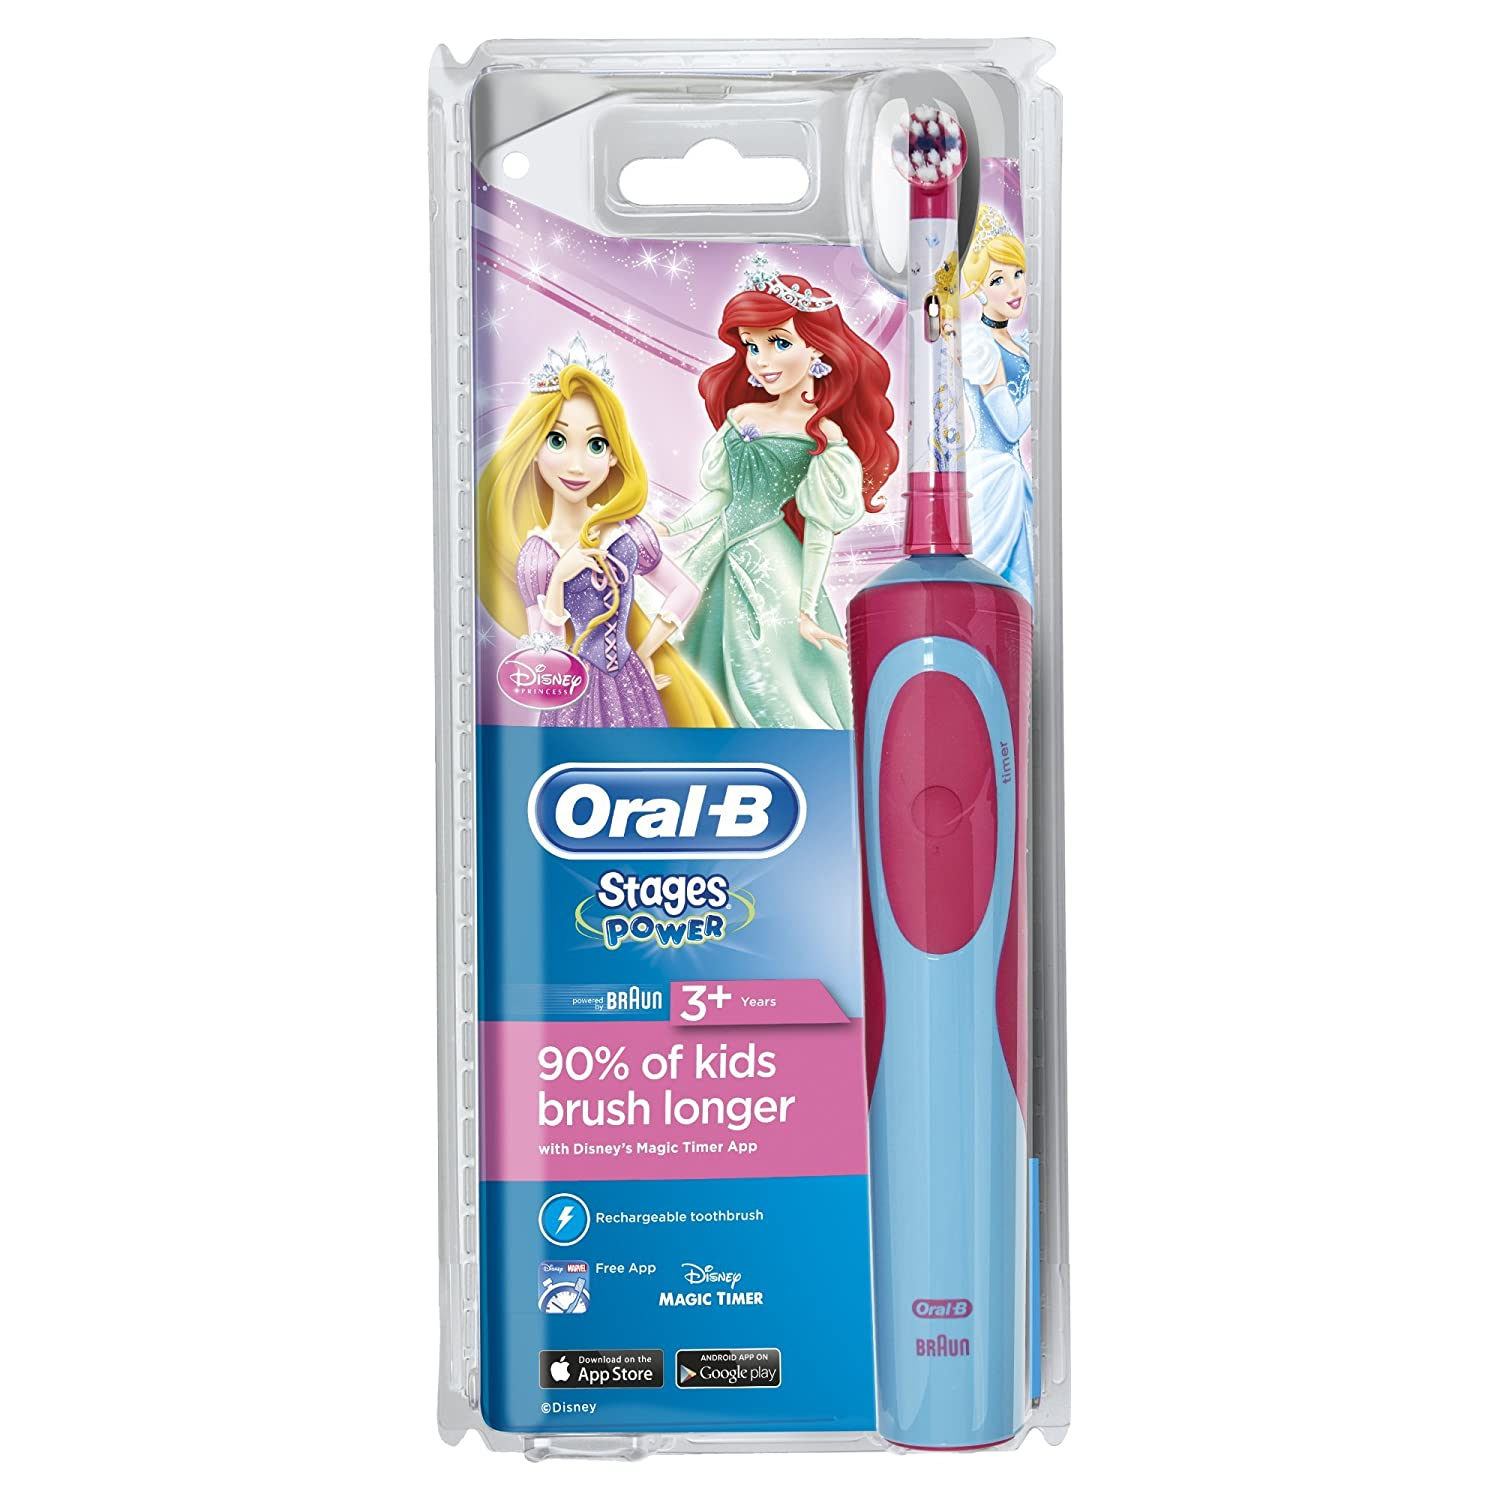 Amazon.com: Oral-B Braun Stages Vitality Princess Electric Toothbrush For Kids: Health & Personal Care